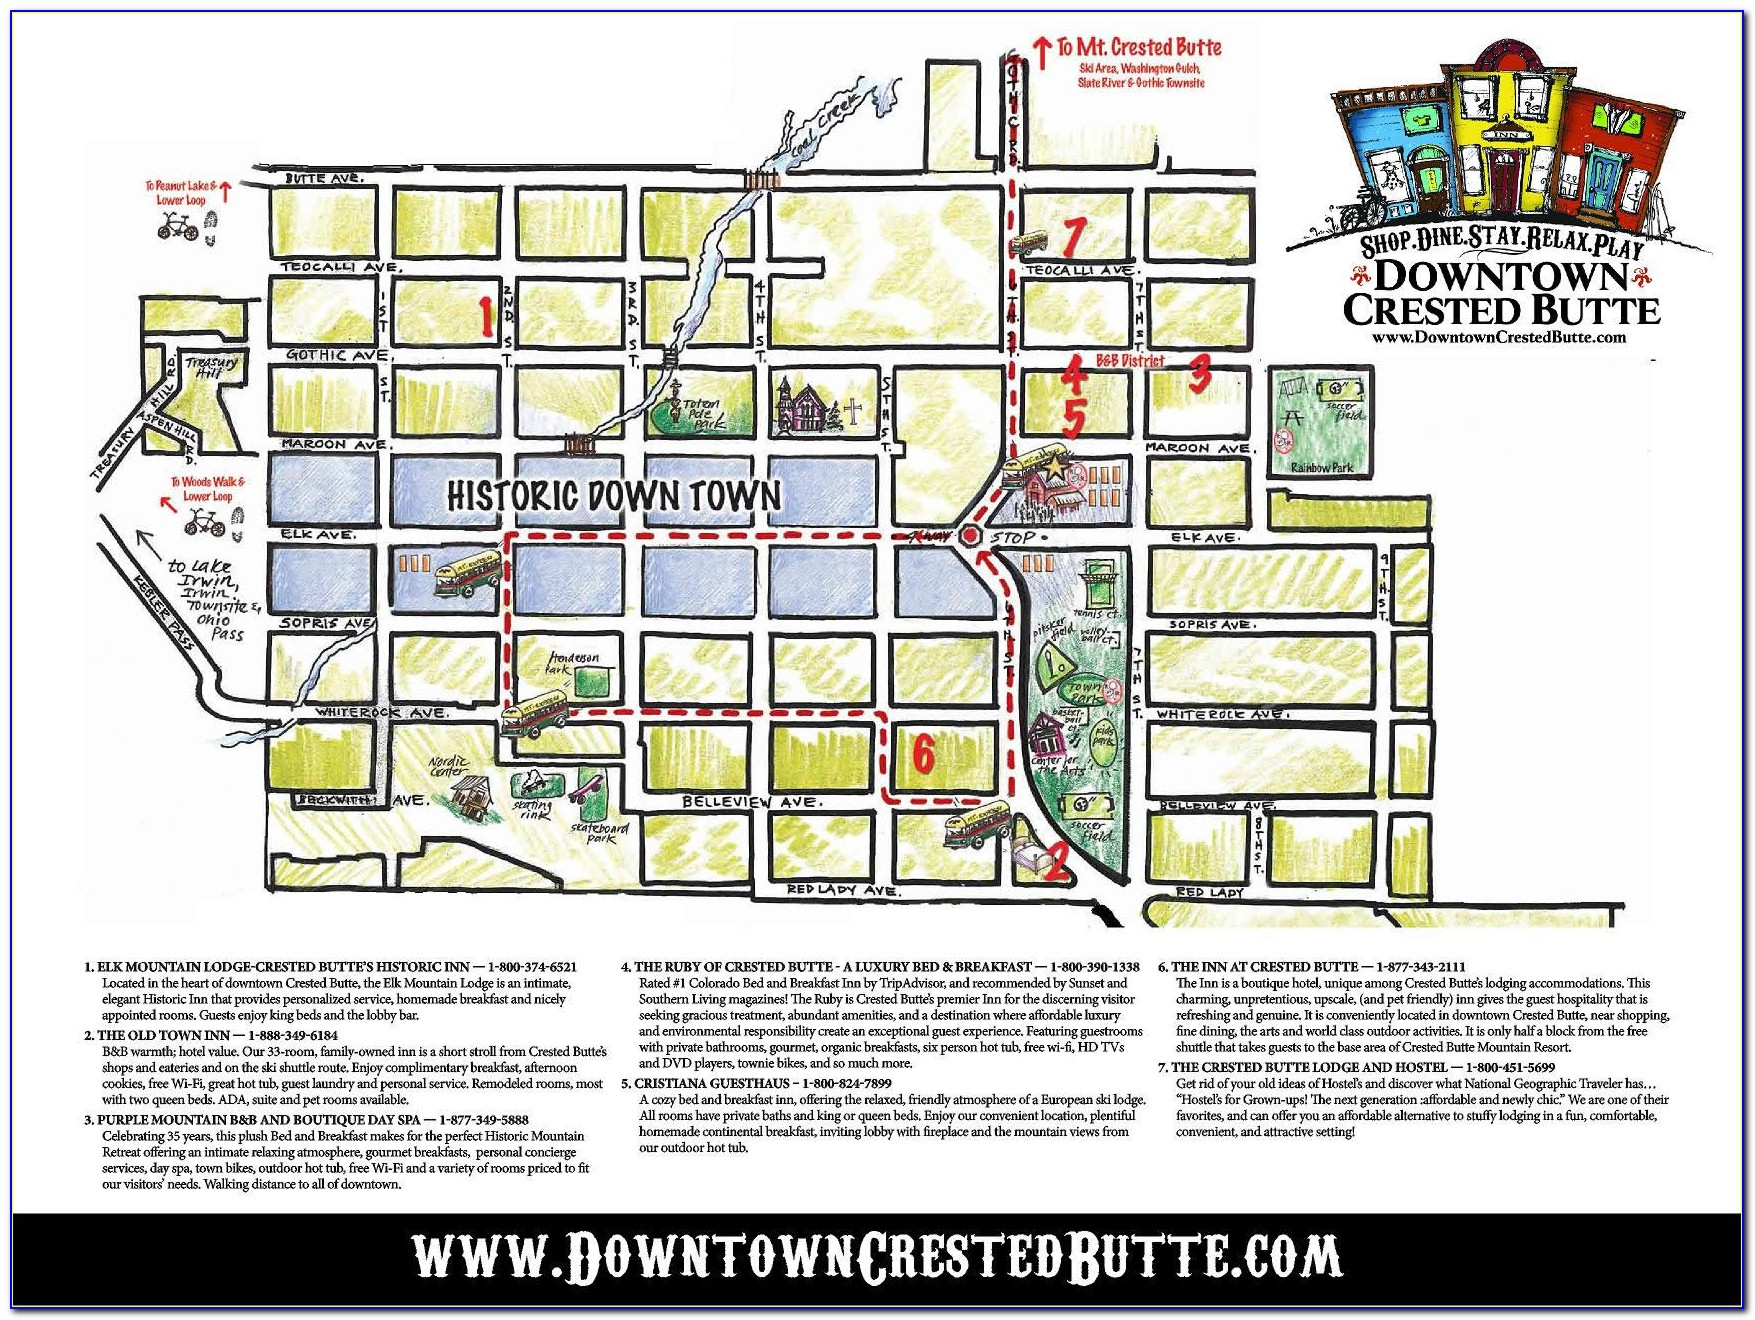 Crested Butte Lodging Map